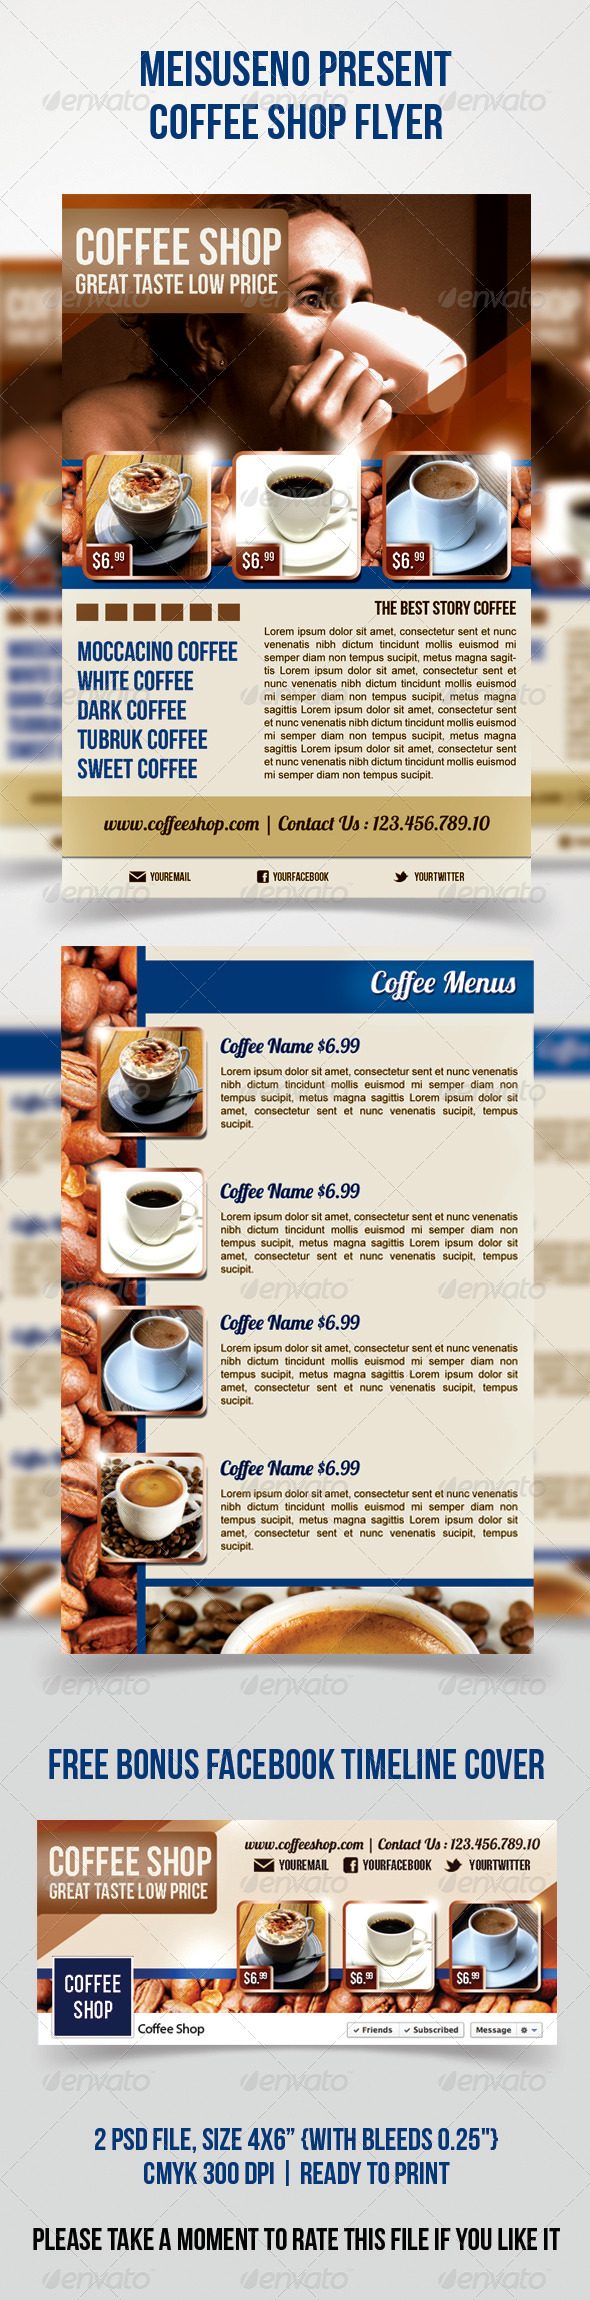 GraphicRiver Coffee Shop Flyer 4577602